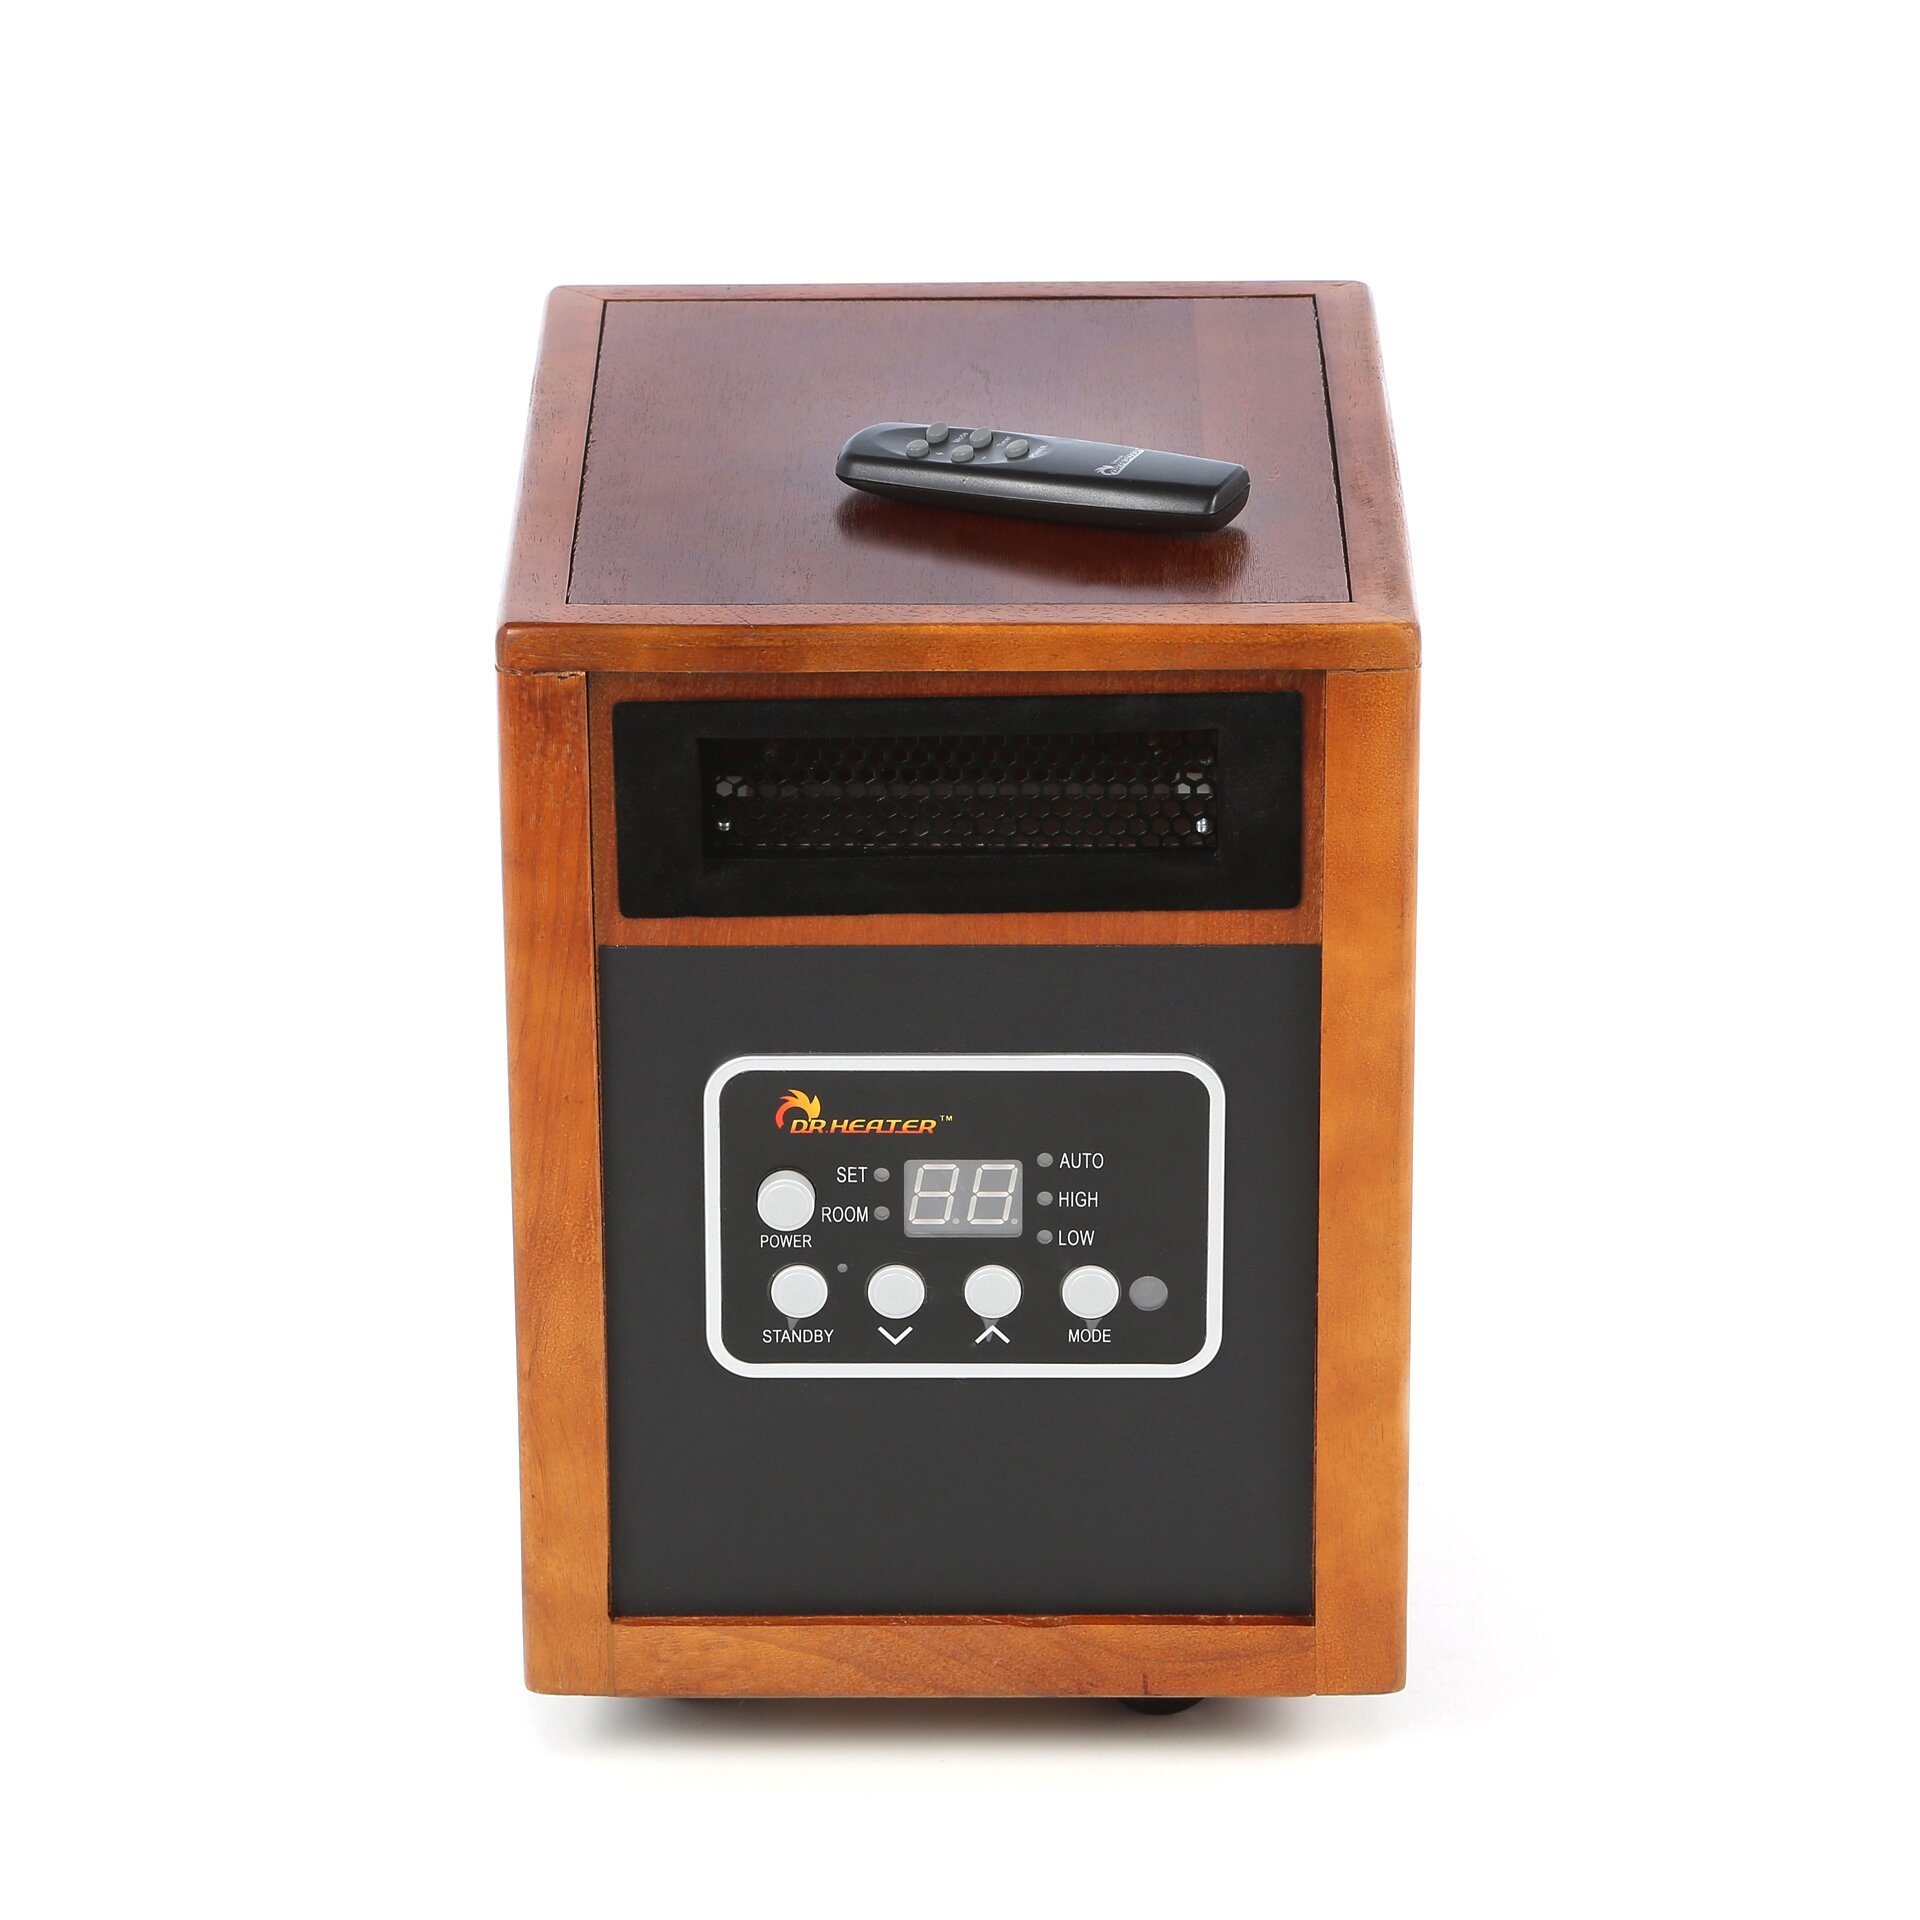 Watt Portable Electric Infrared Cabinet Heater by Dr. Infrared Heater